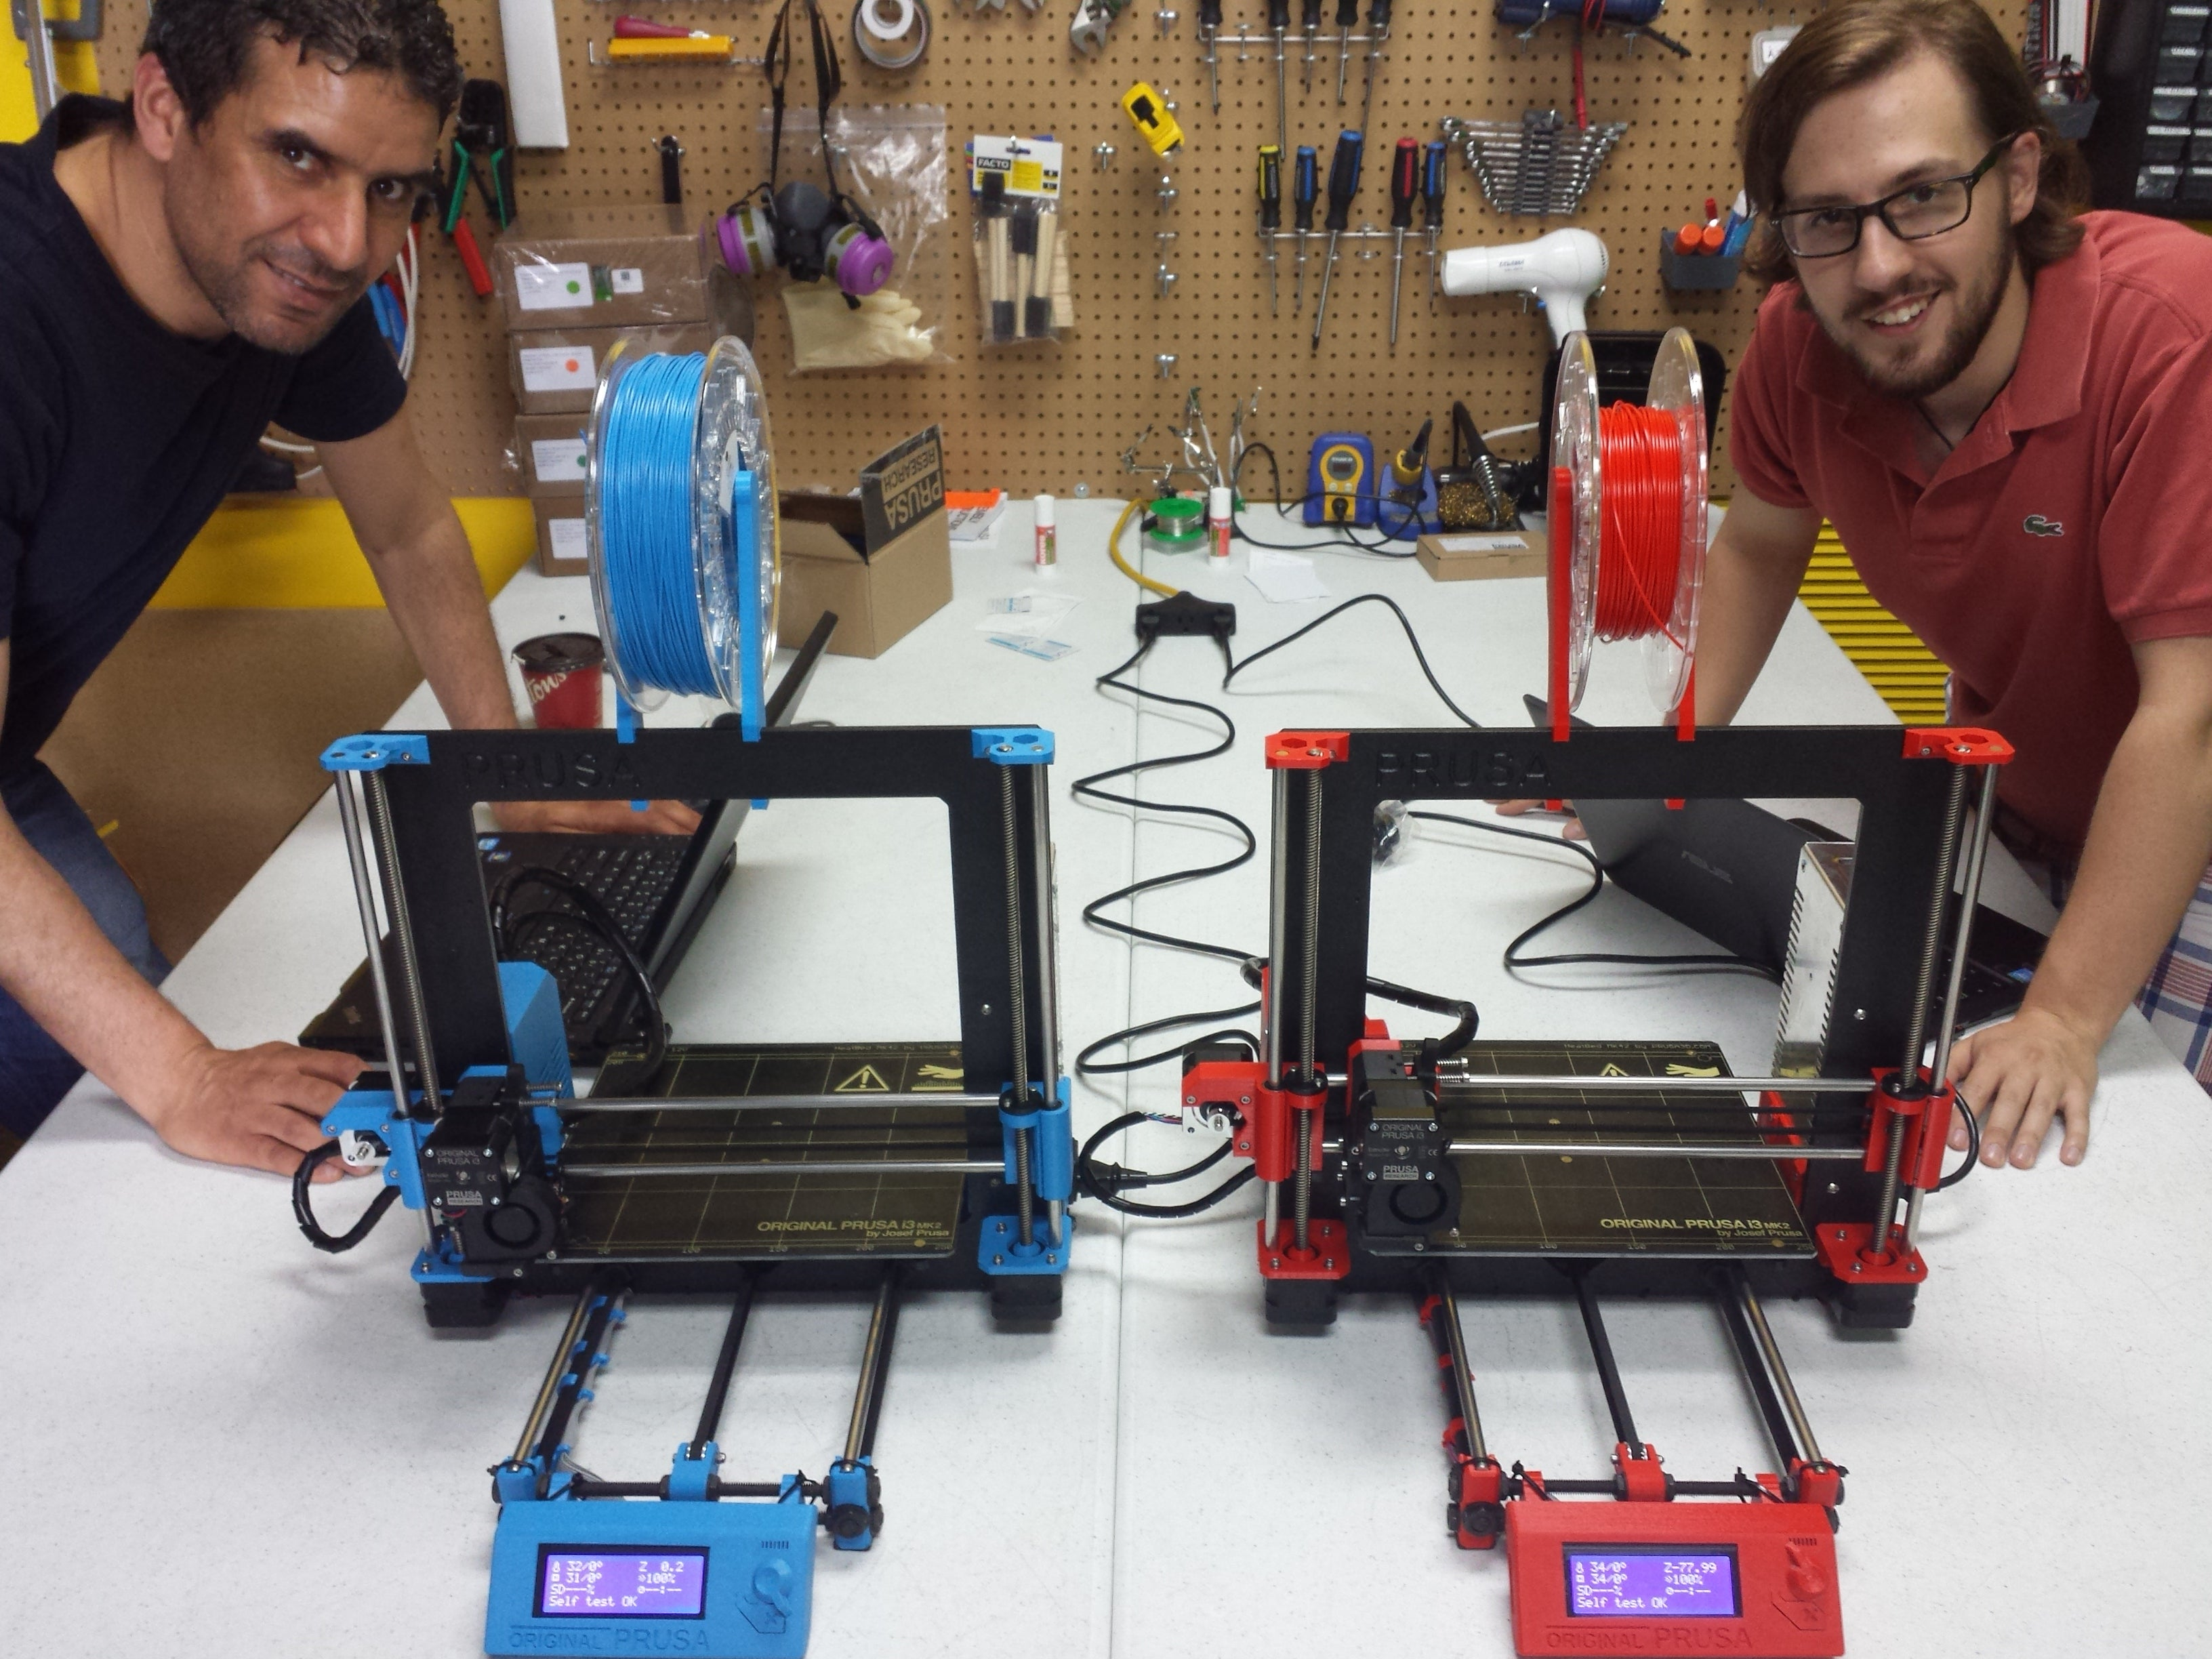 Picture of two assembled Prusa i3 MK2 3D printers by Voxel Factory